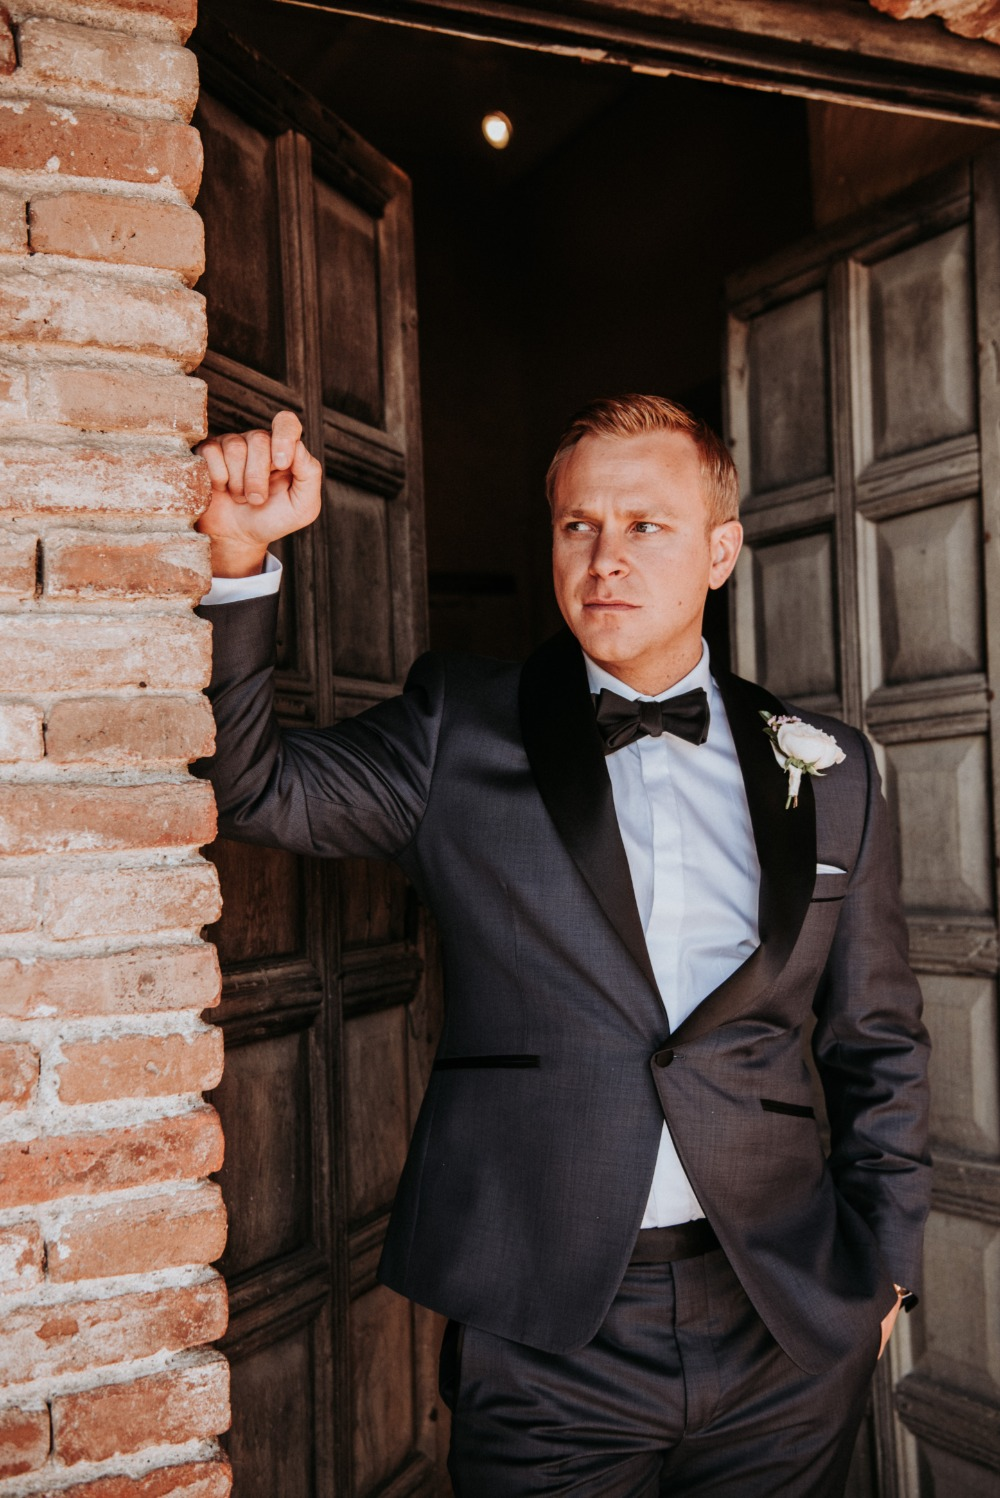 groom in sharkskin suit